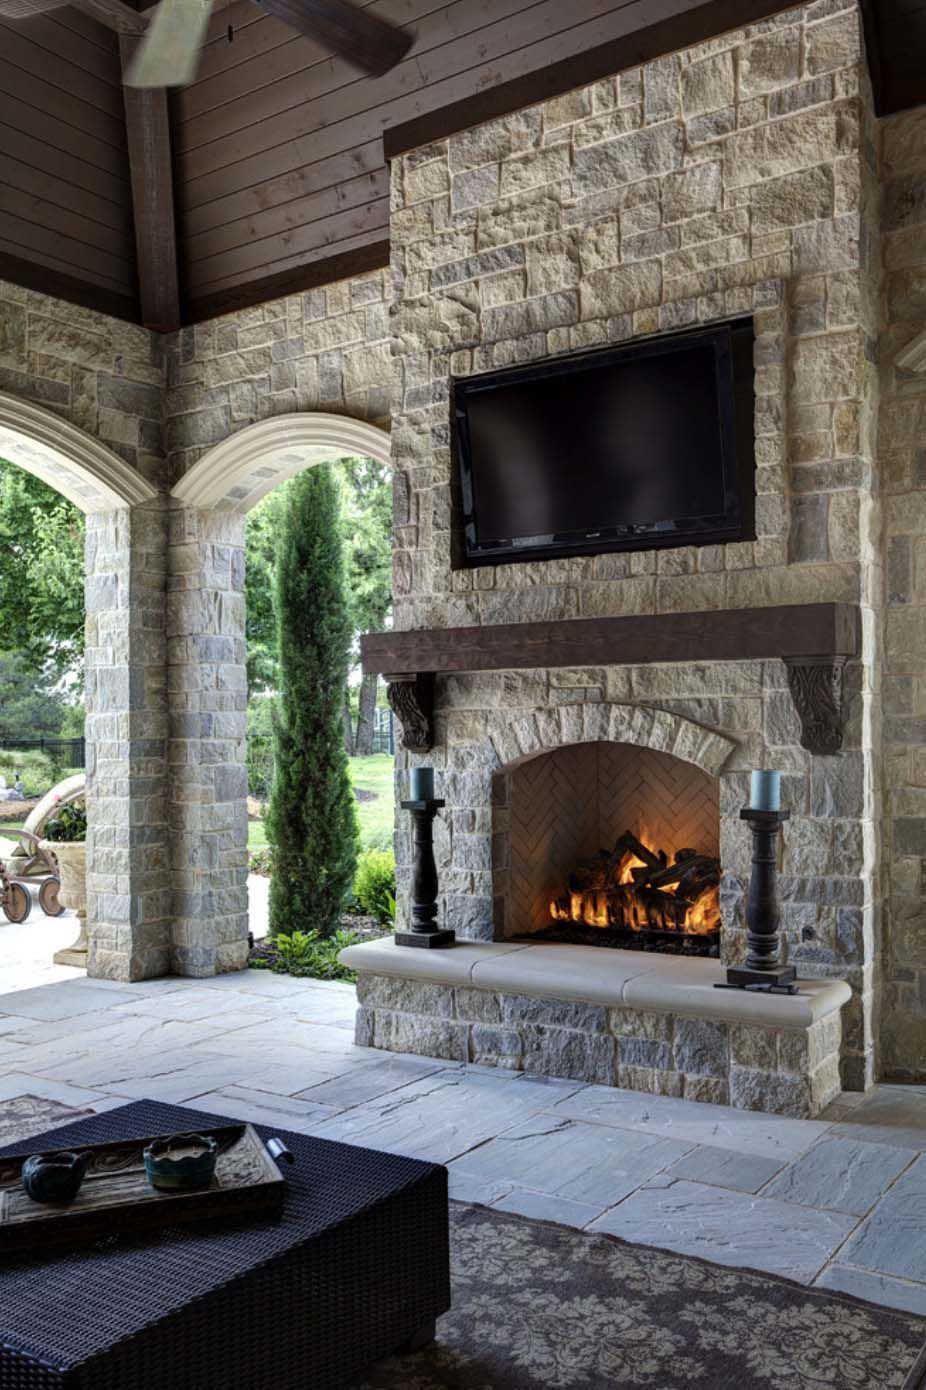 Outdoor Covered Patio With Fireplace Great Addition Idea Dream Dream Dream: A French Chateaux Style Dream Home In Southlake, Texas